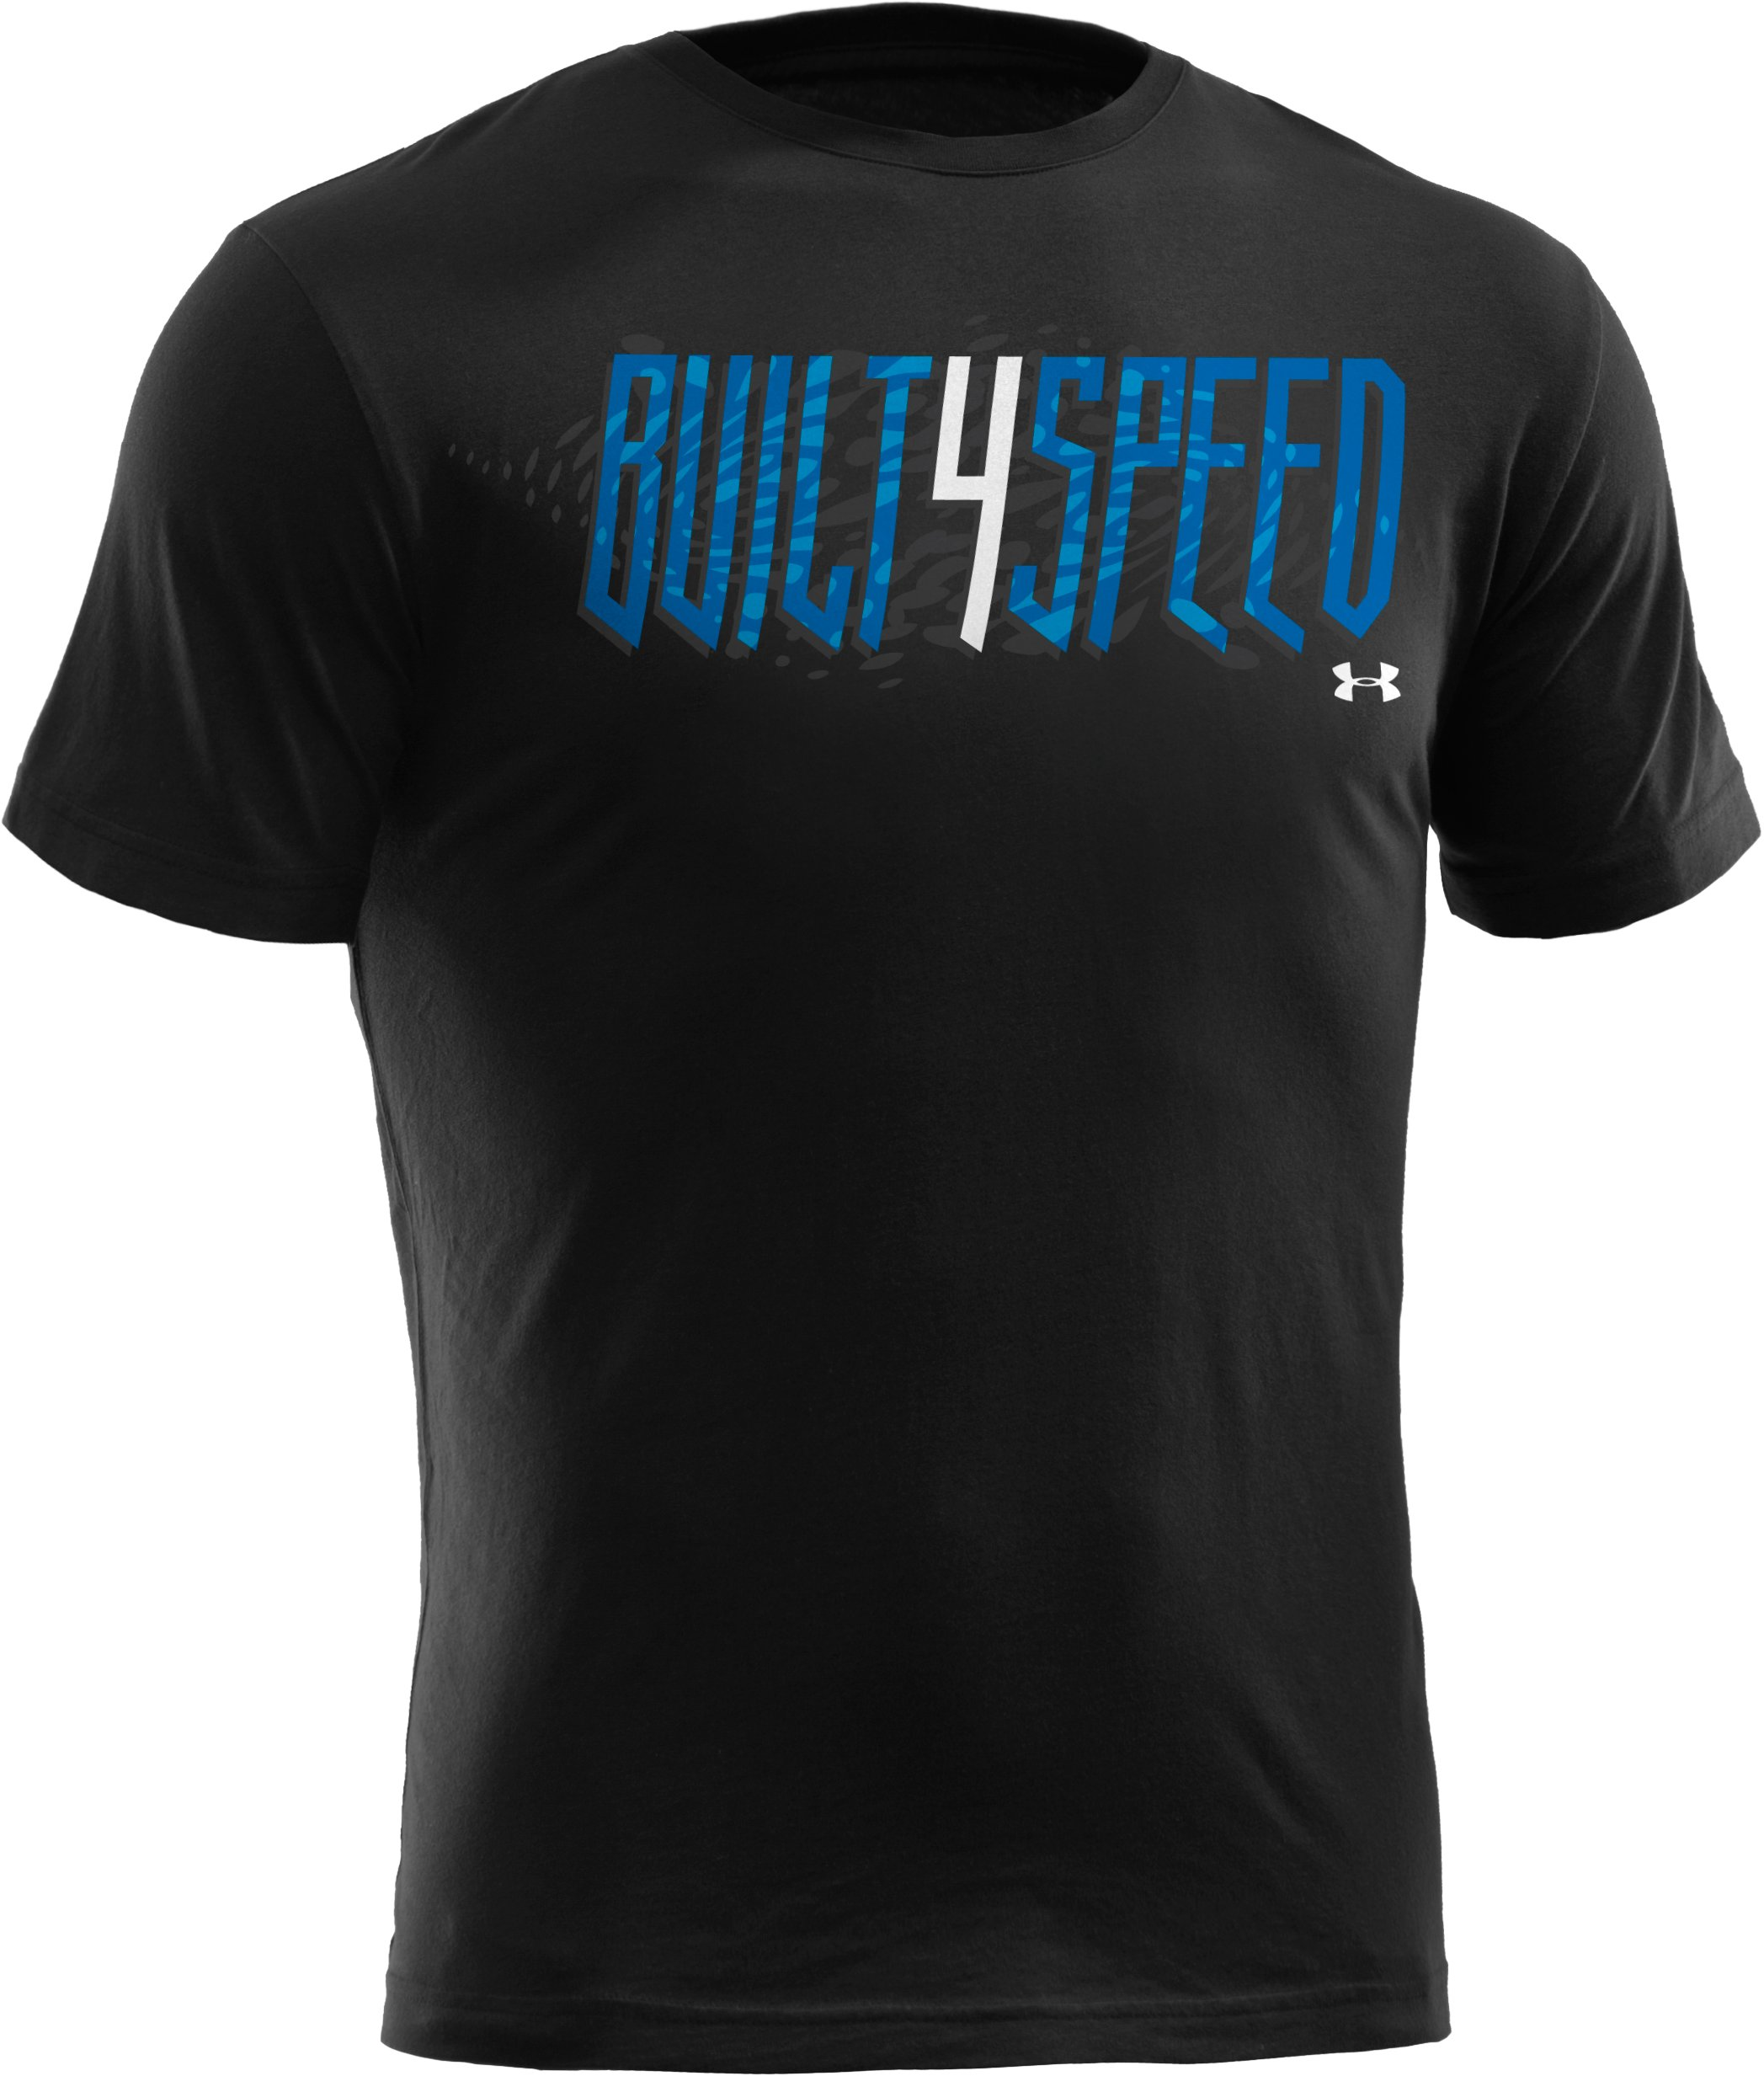 Men's UA Built 4 Speed T-Shirt, Black